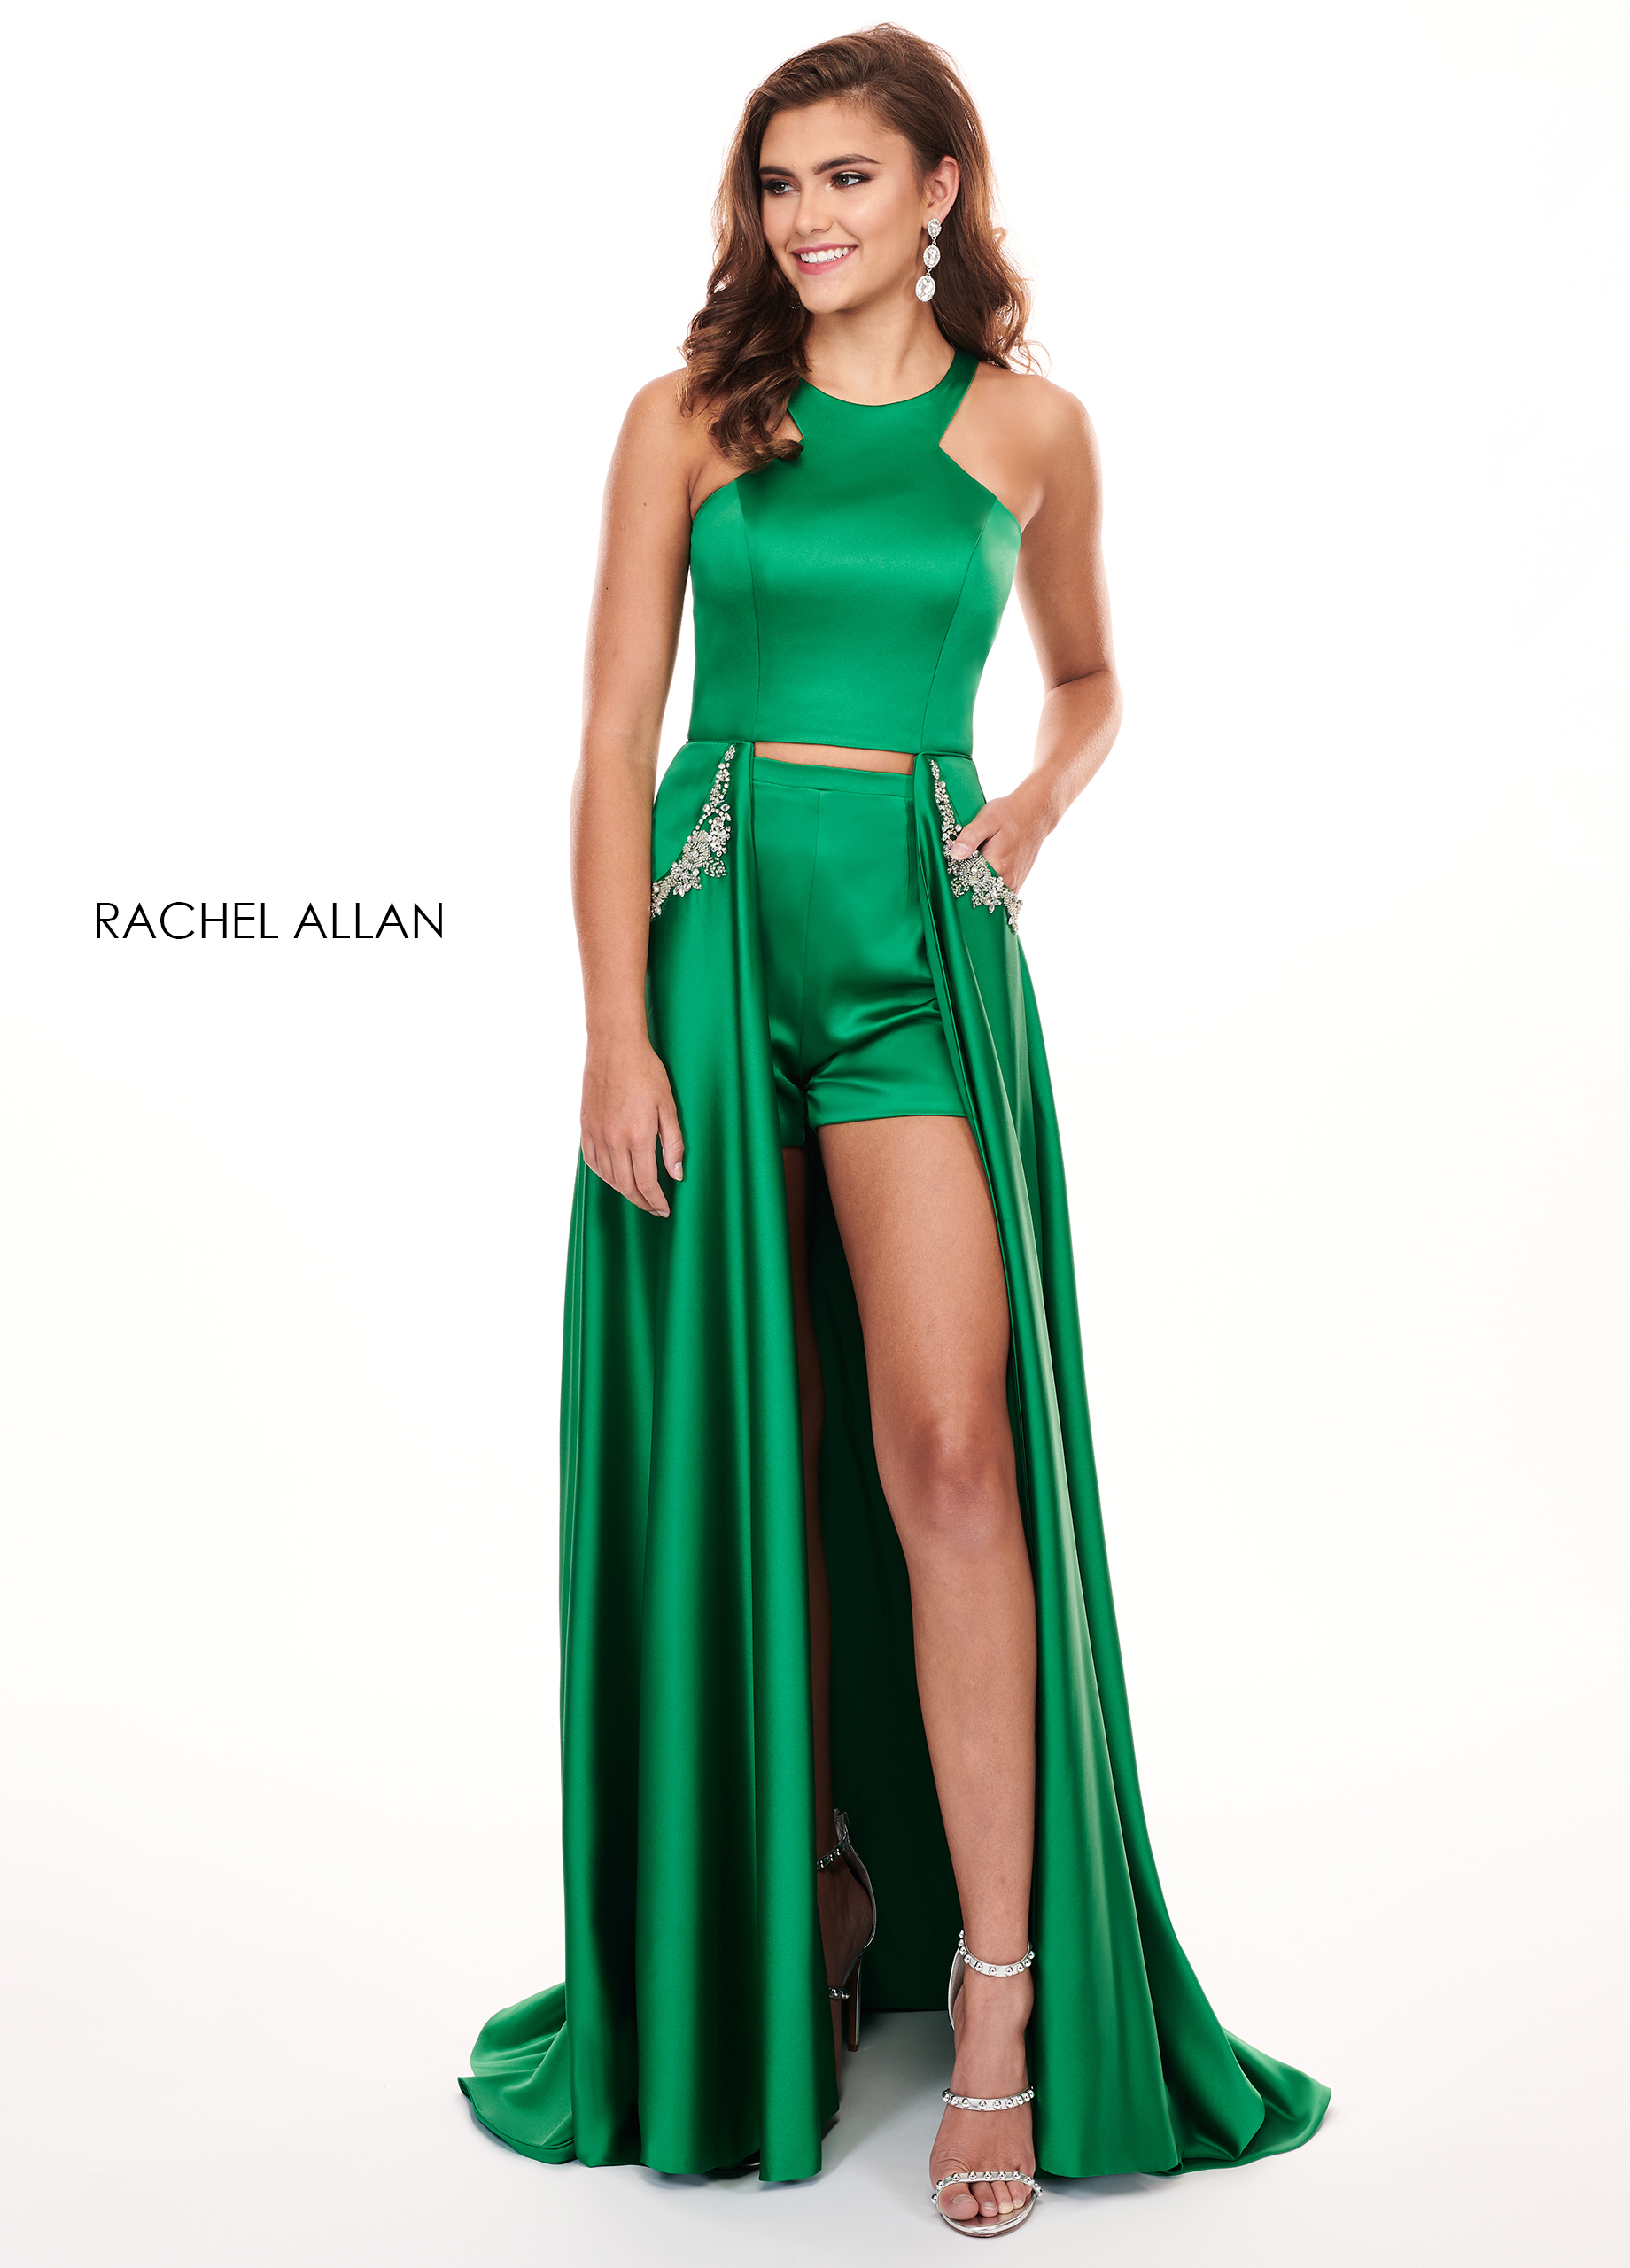 High Neckline Shorts With Overlay BEST SELLERS in Emerald Color